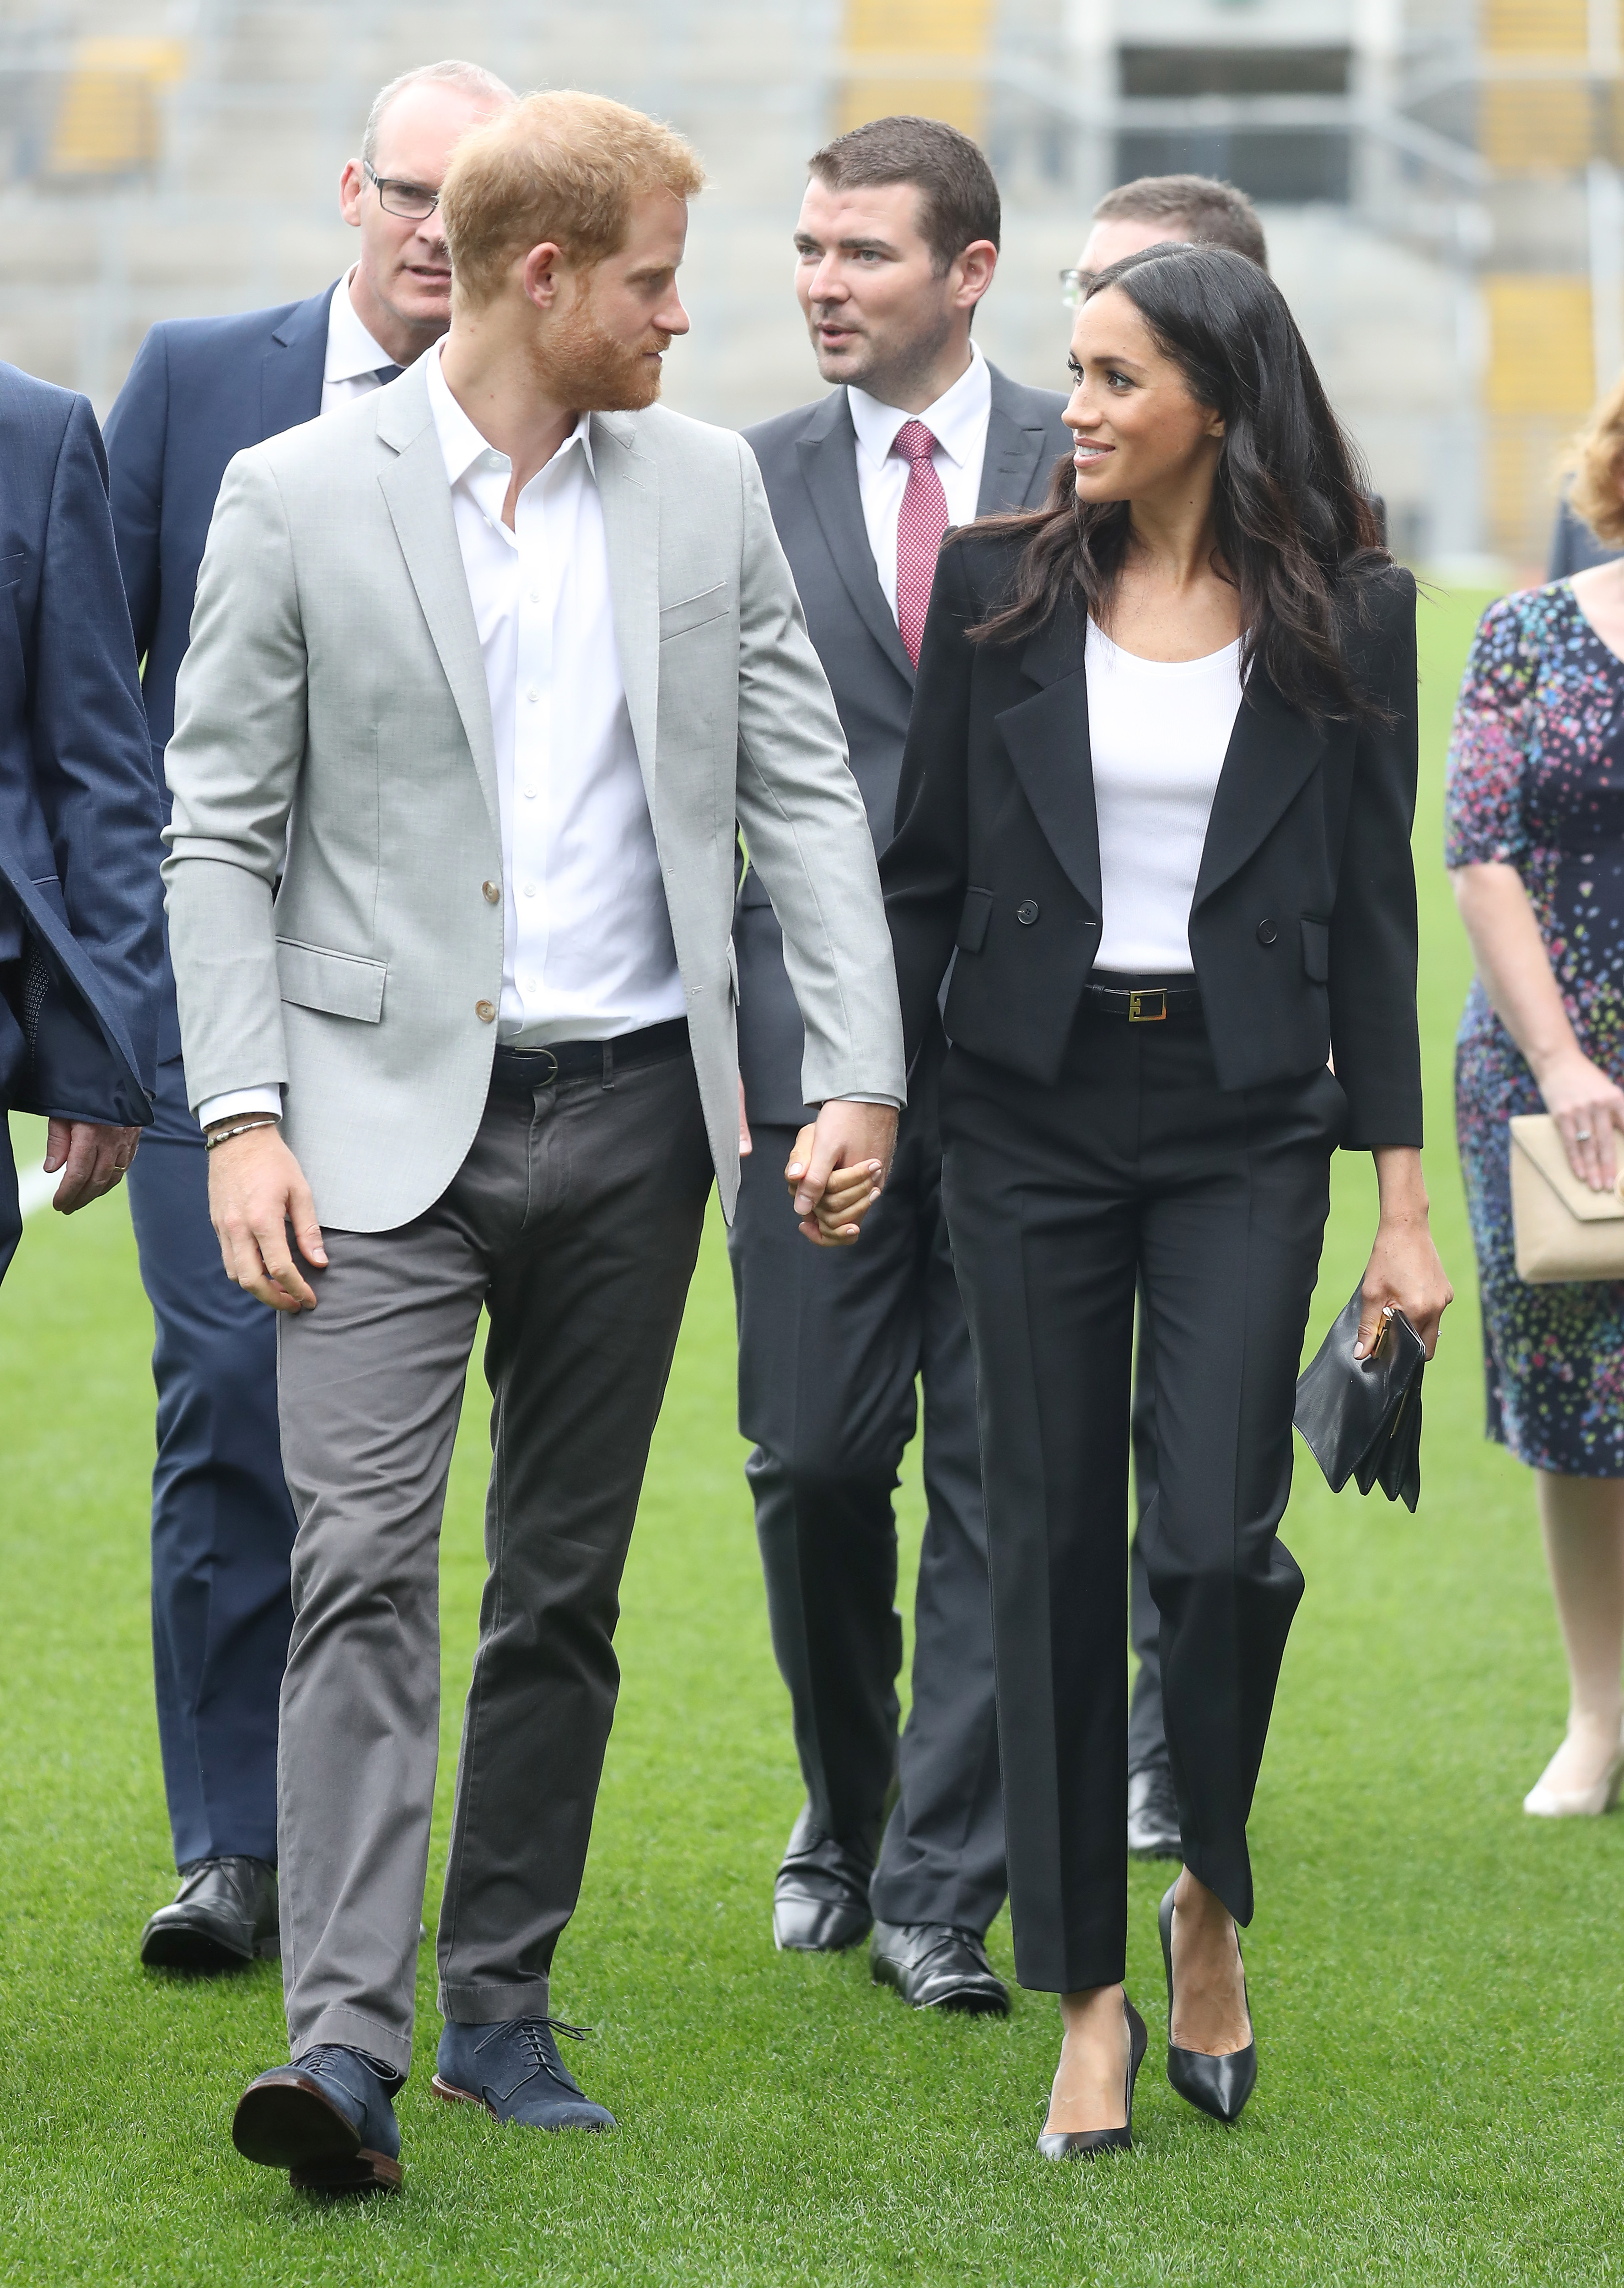 Prince Harry, Duke of Sussex and Meghan, Duchess of Sussex visit Croke Park (Source: Getty Images)